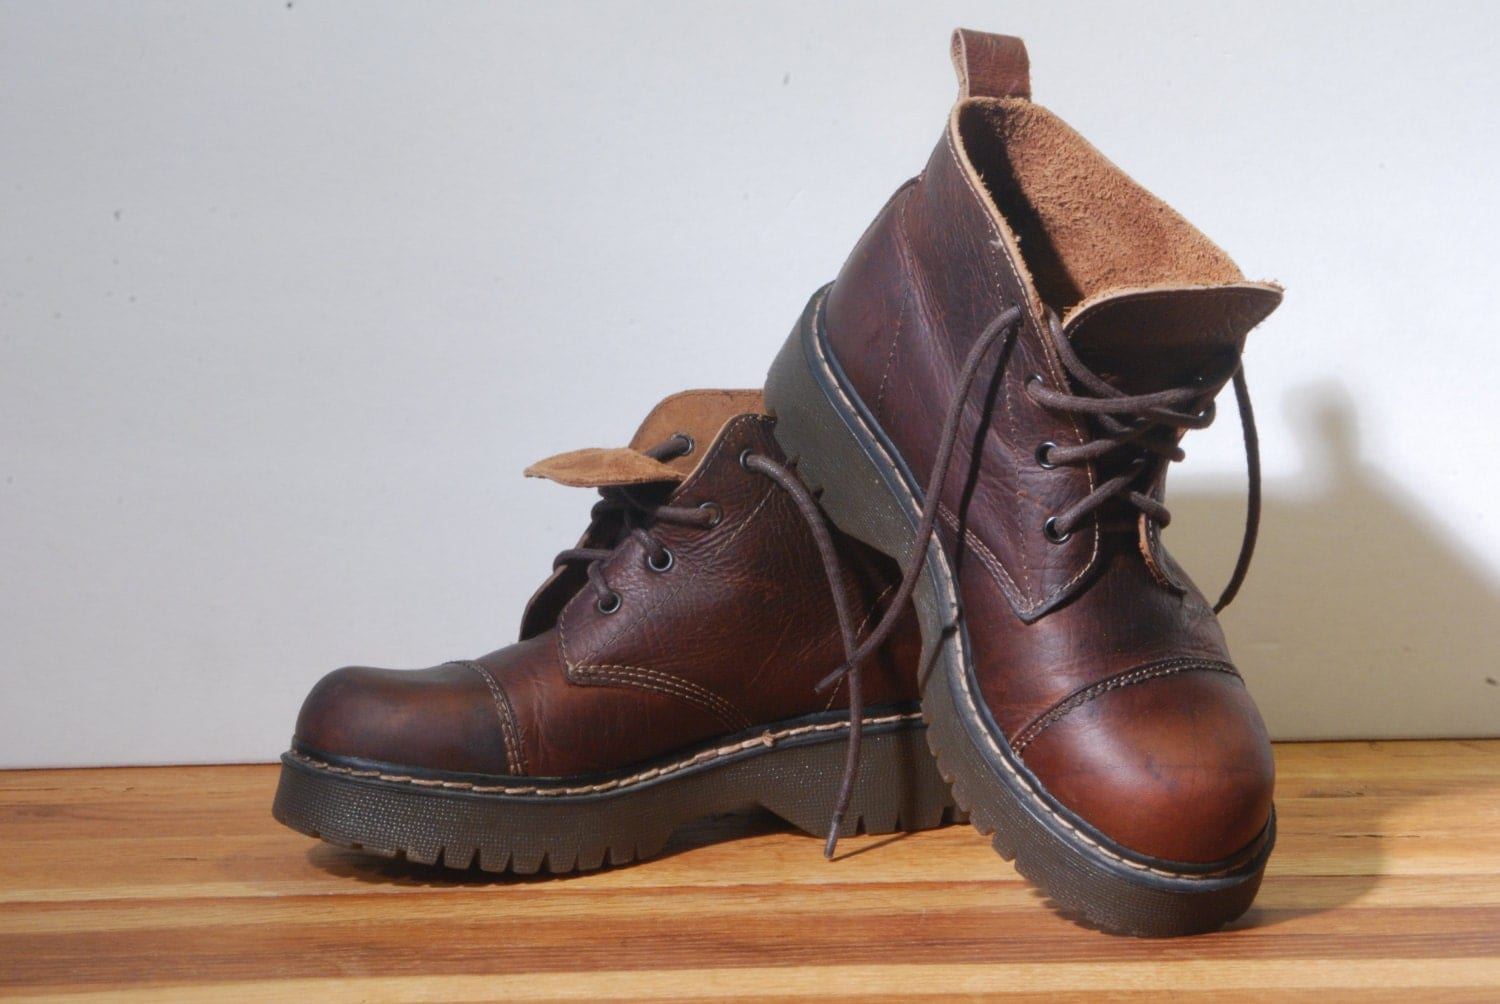 leather boots hiking made in spain s 6 5 by